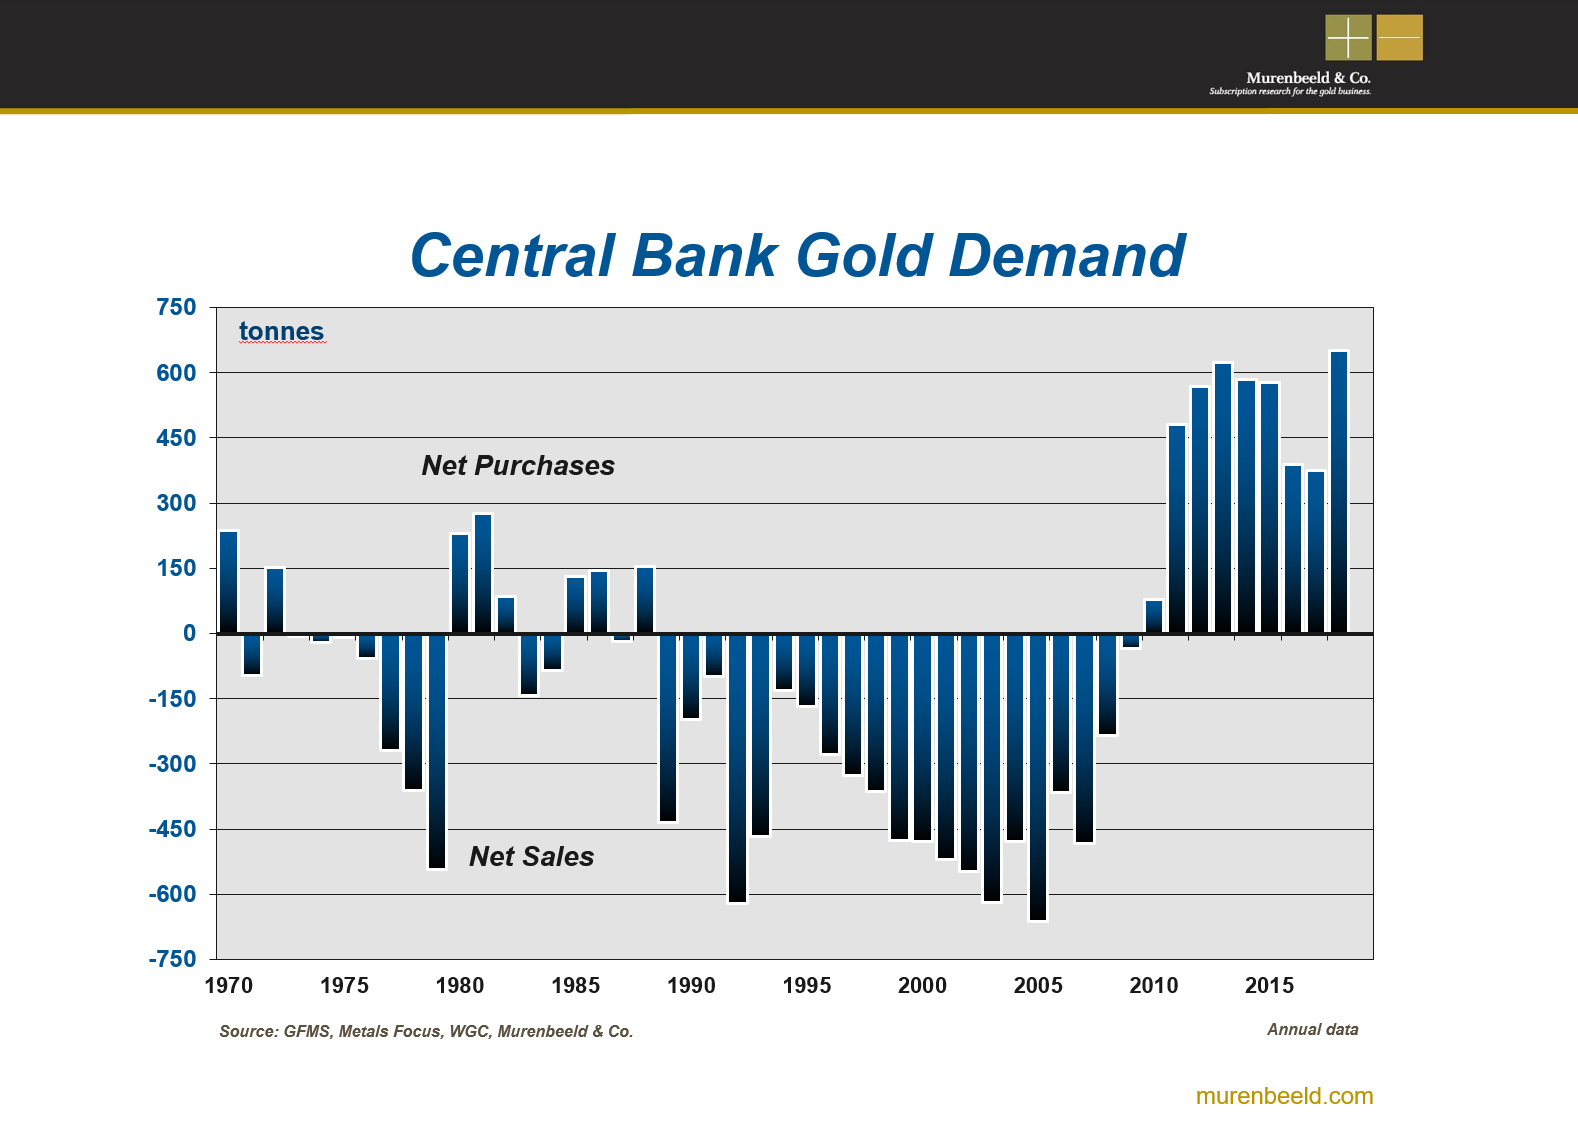 Central Bank Gold Demand